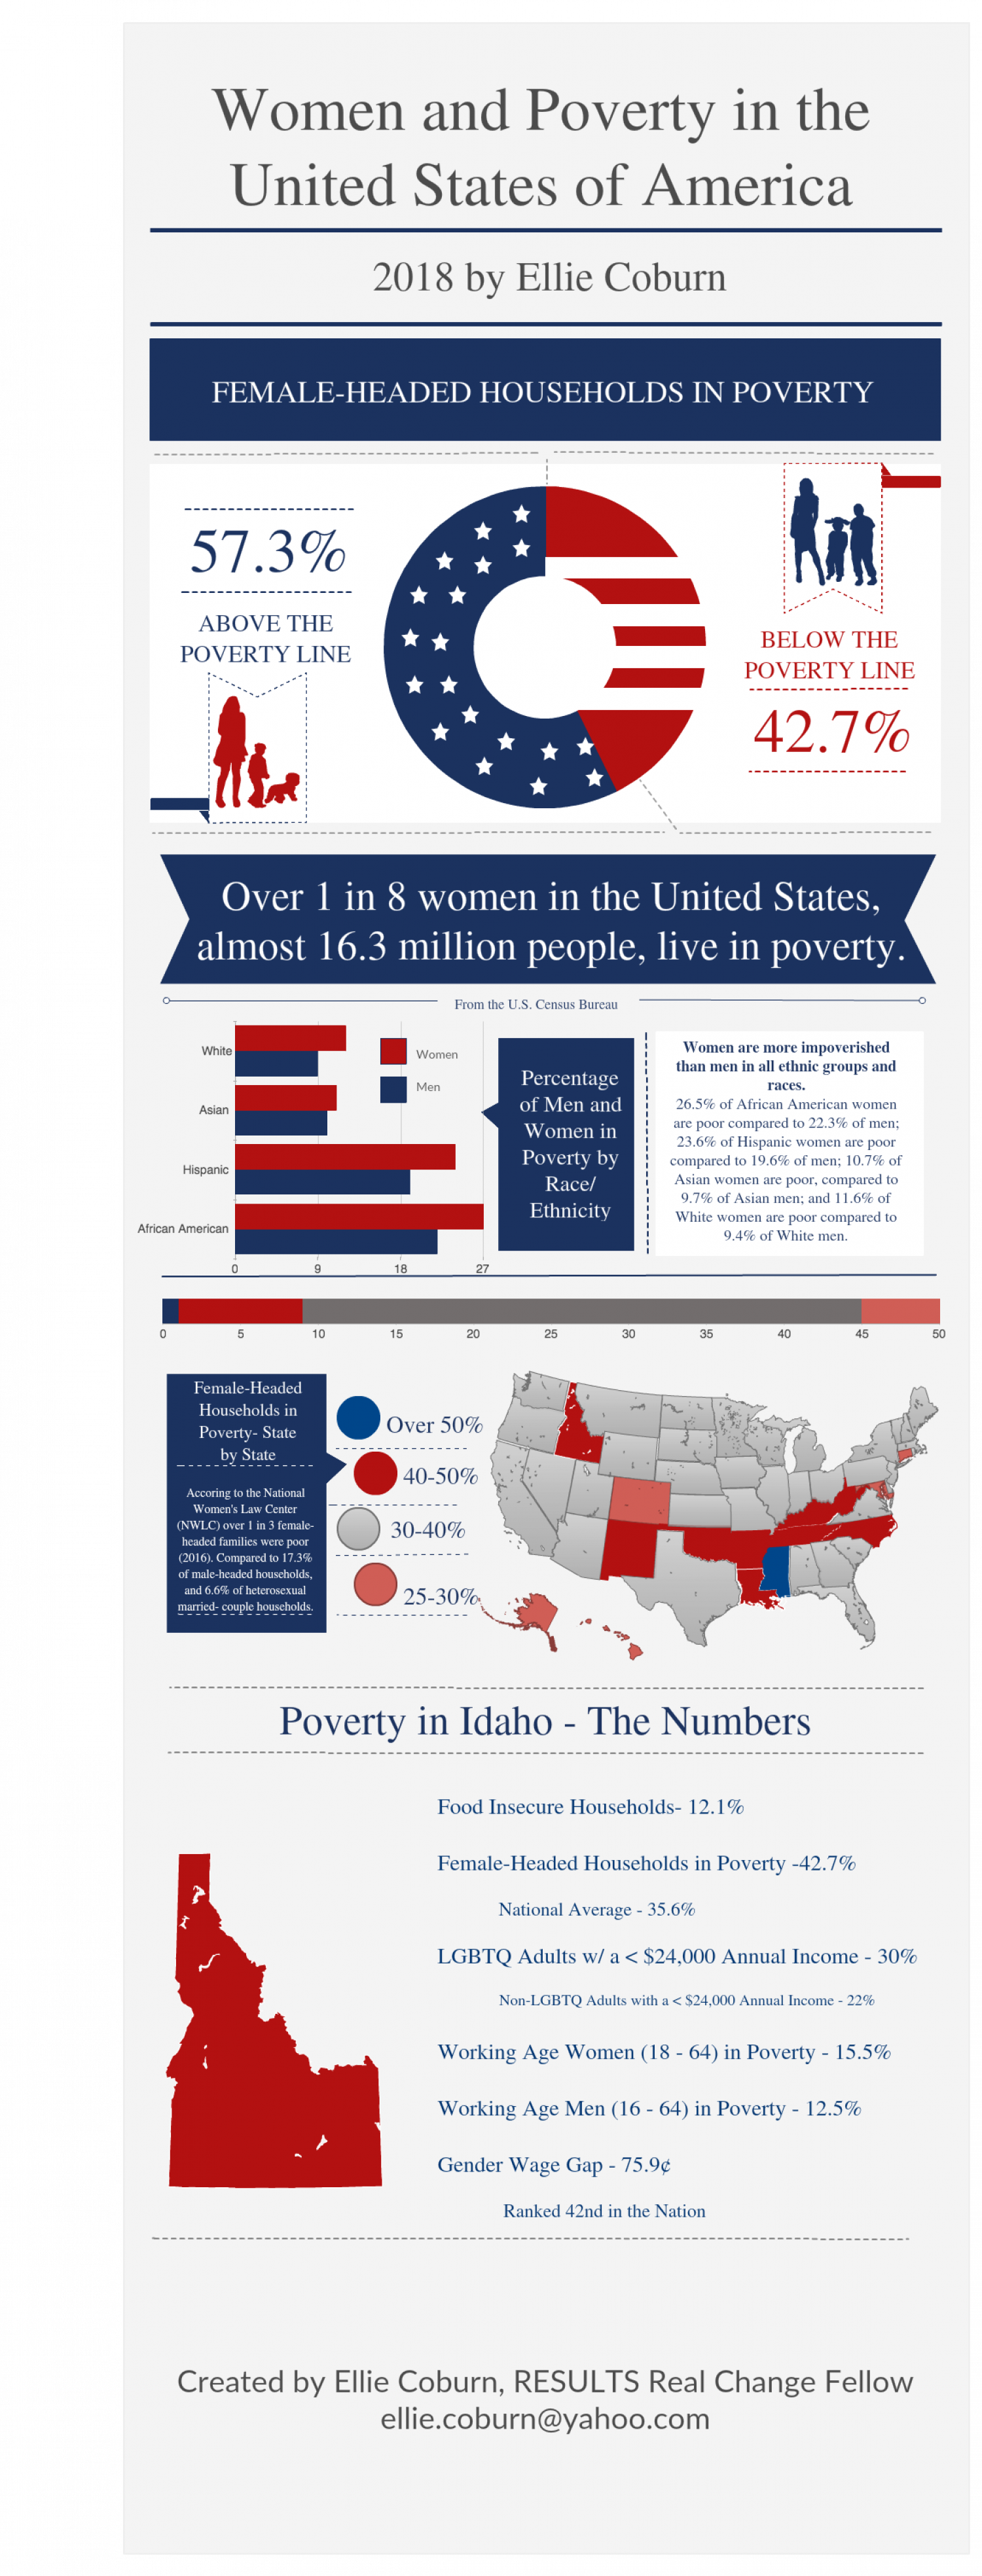 Women and Poverty in the United States Infographic